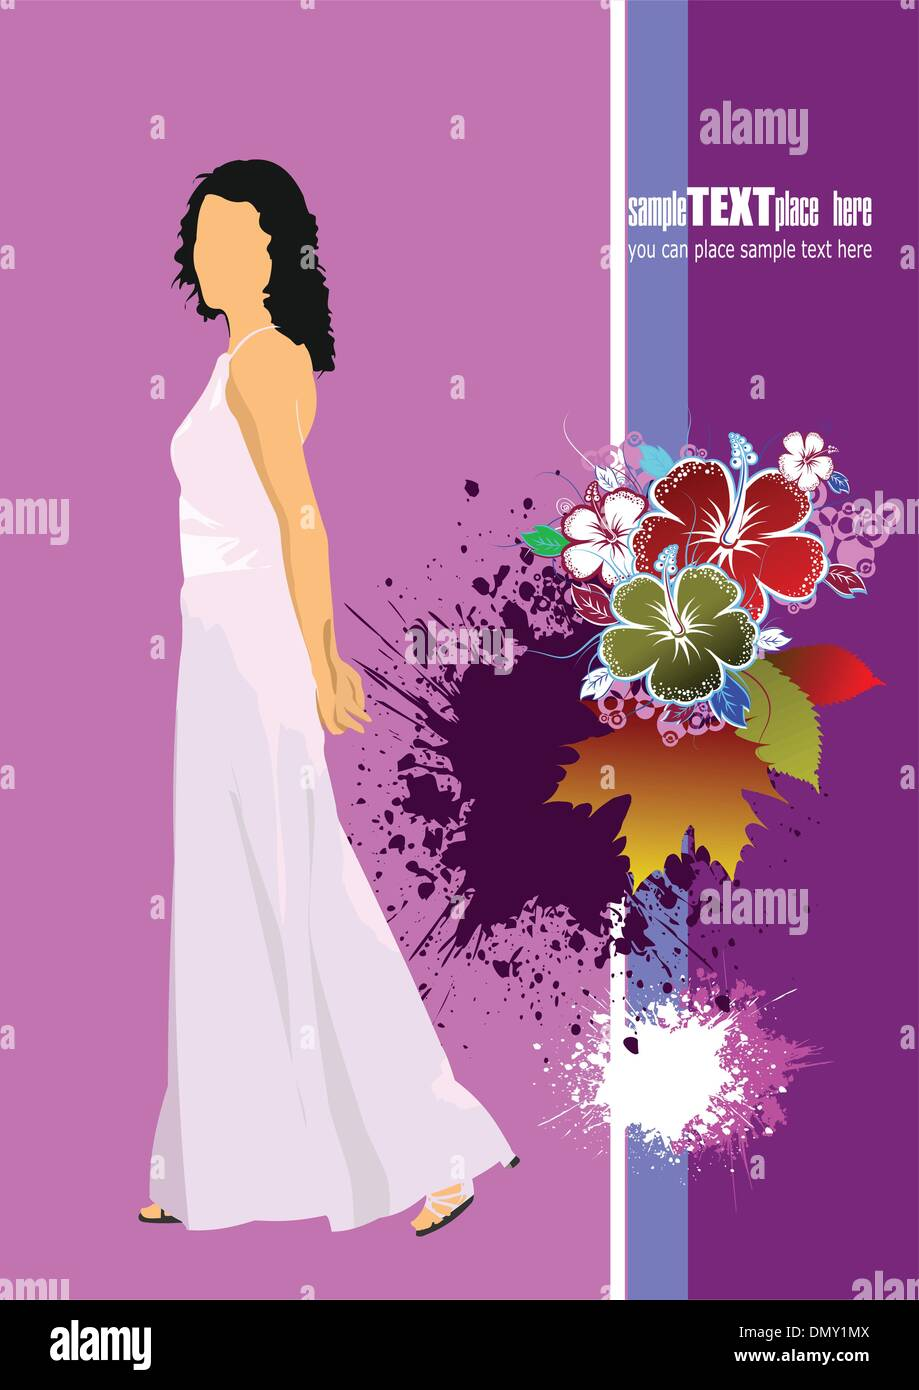 Wedding Reception Vector Vectors Stock Photos & Wedding Reception ...